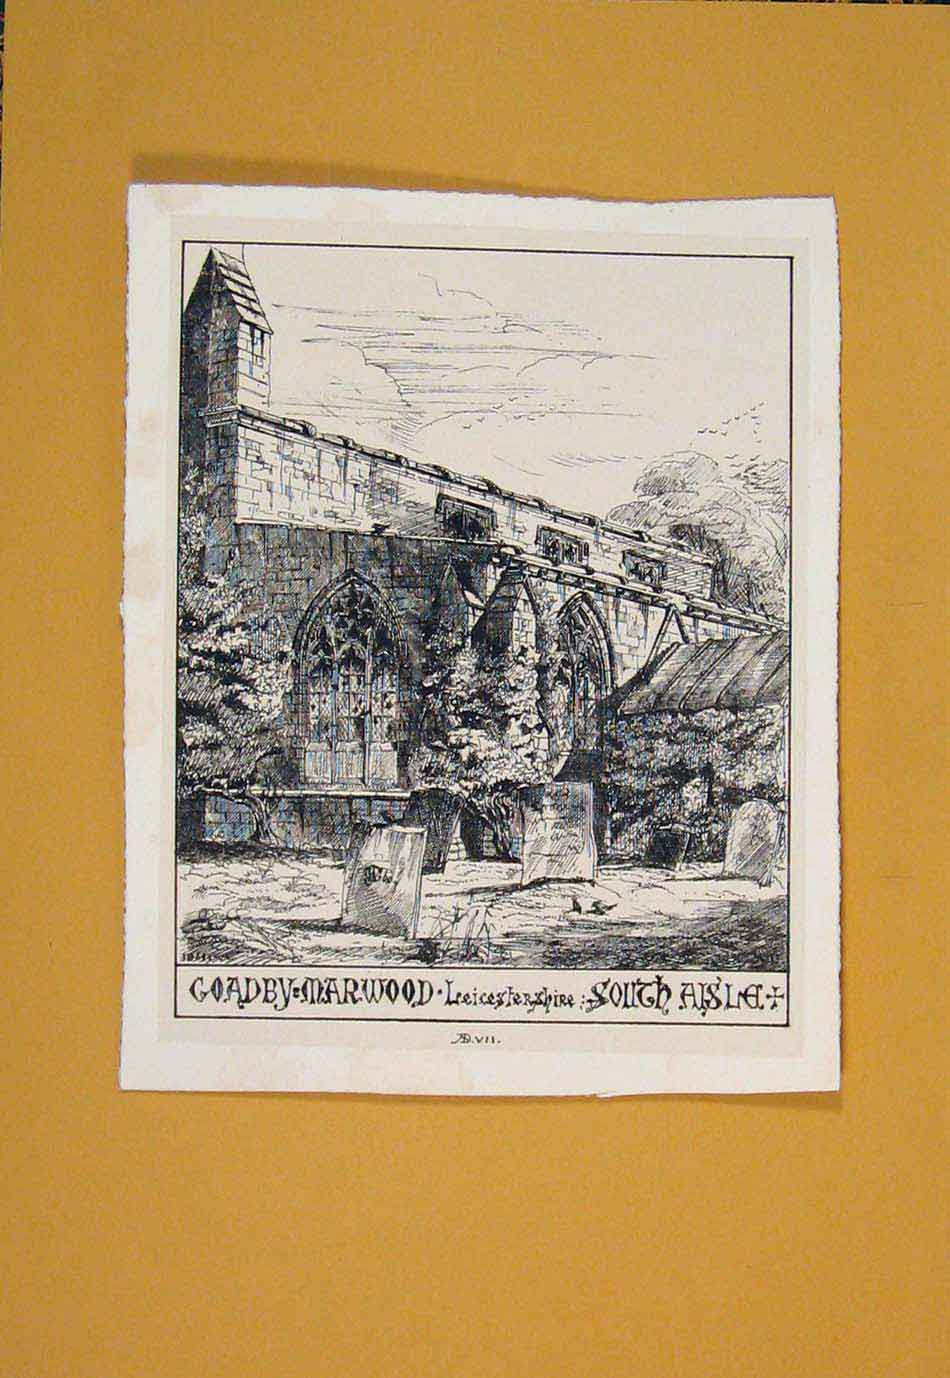 Print Goadby Marwood Liecestershire South Grave Yard 366021 Old Original